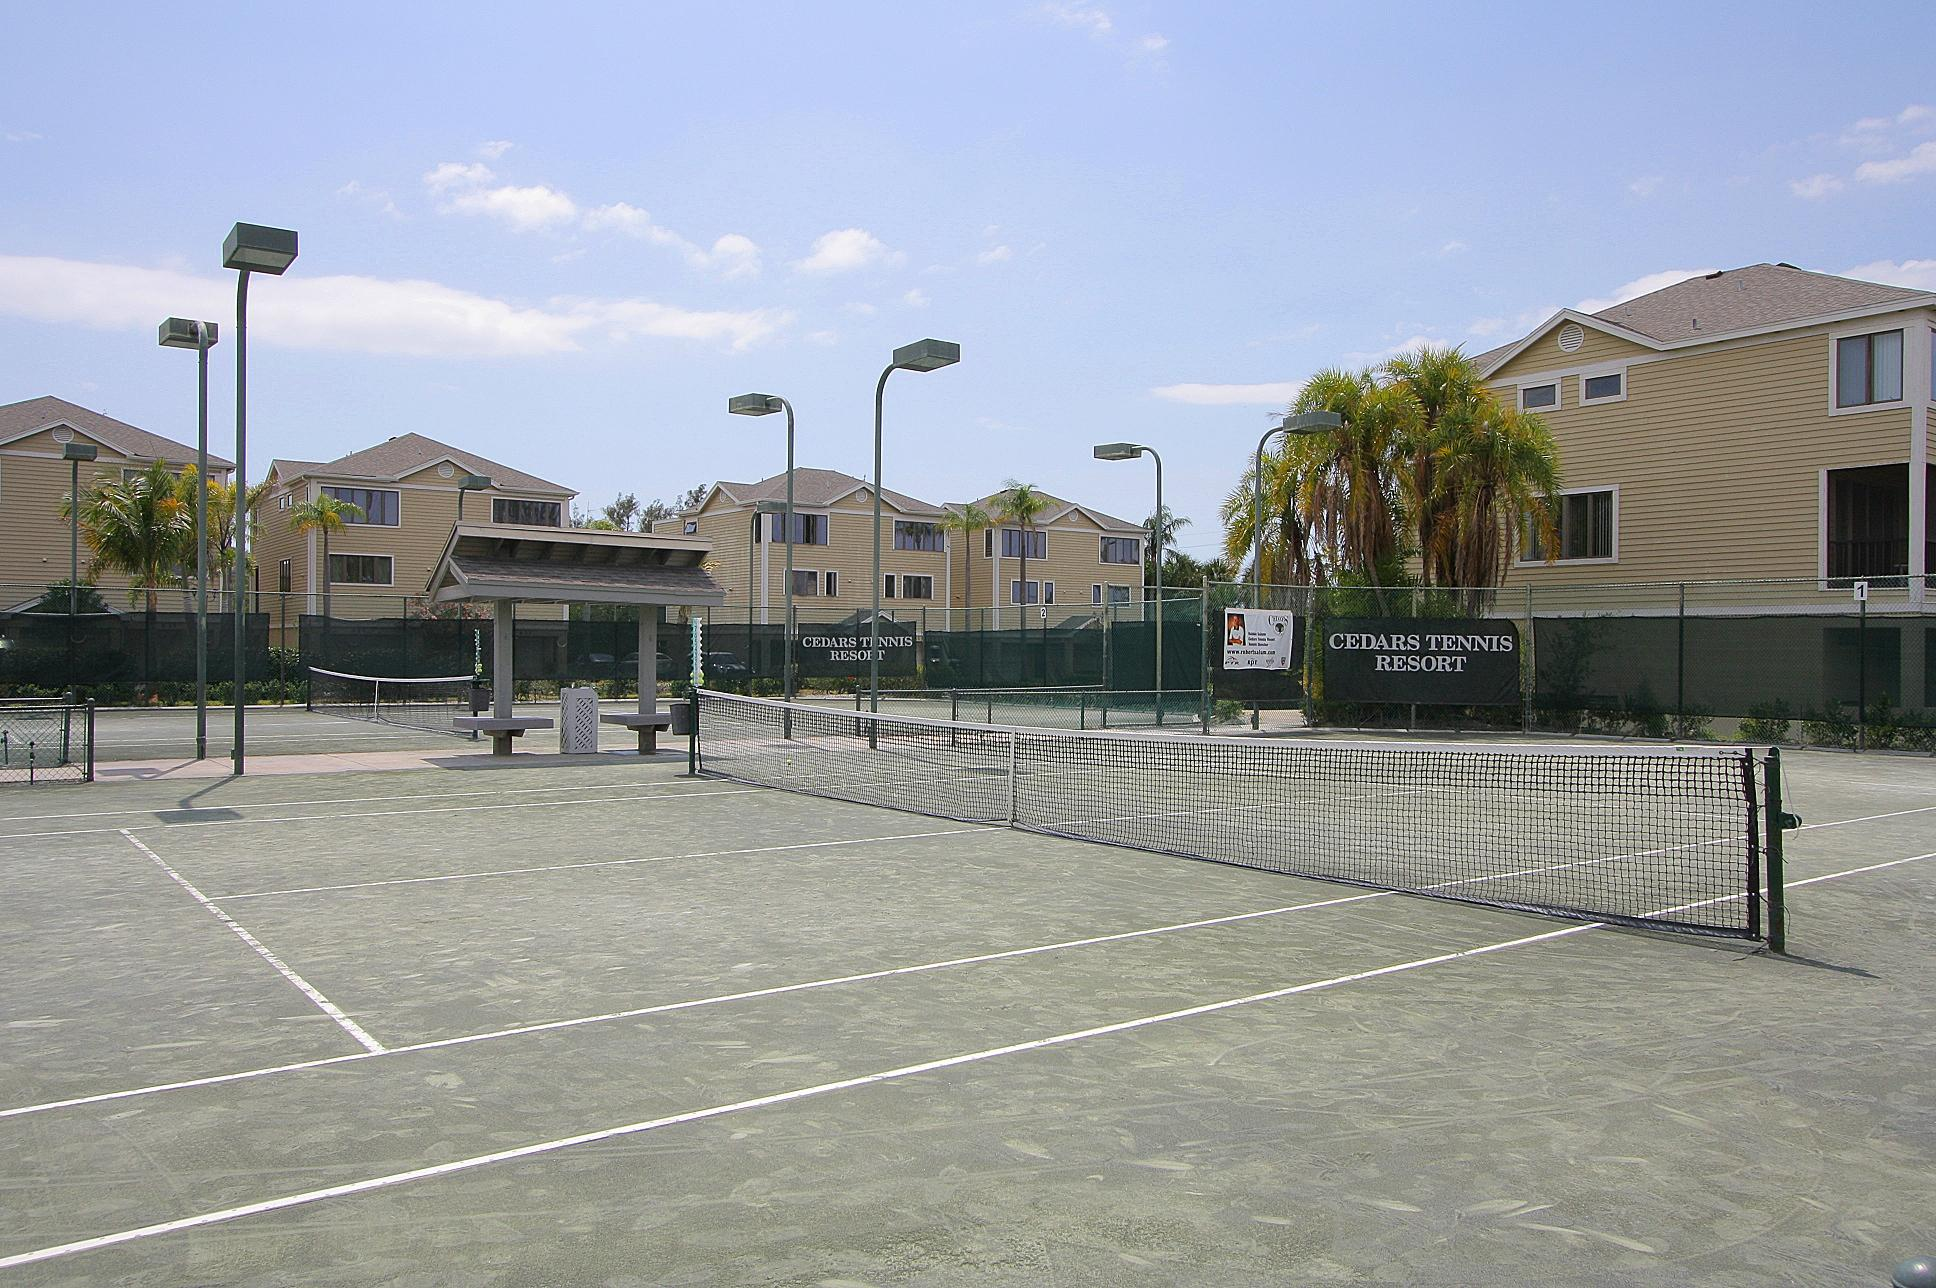 Cedars Tennis Resort